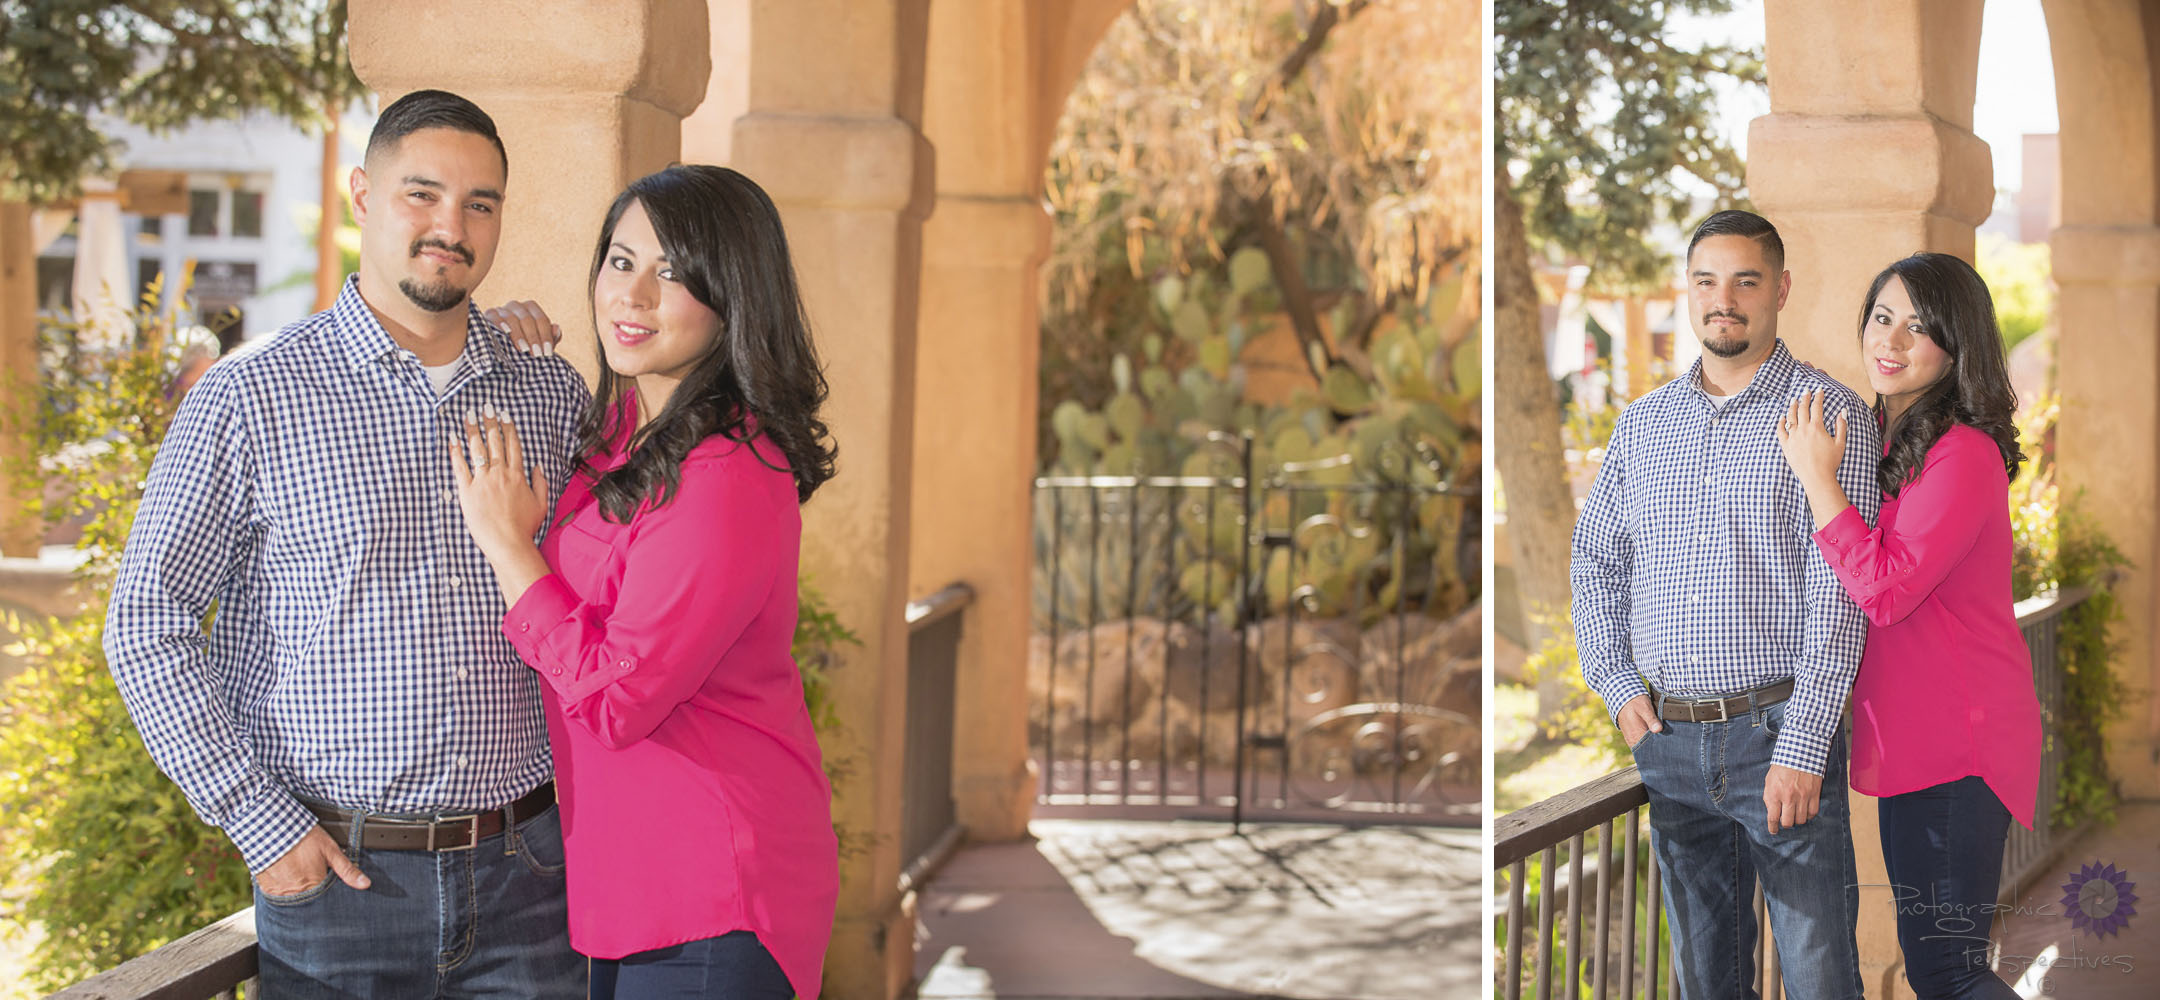 ABQ Old Town | Engagement Photographers Albuquerque | Photographic Perspectives | New Mexico Engagement Session